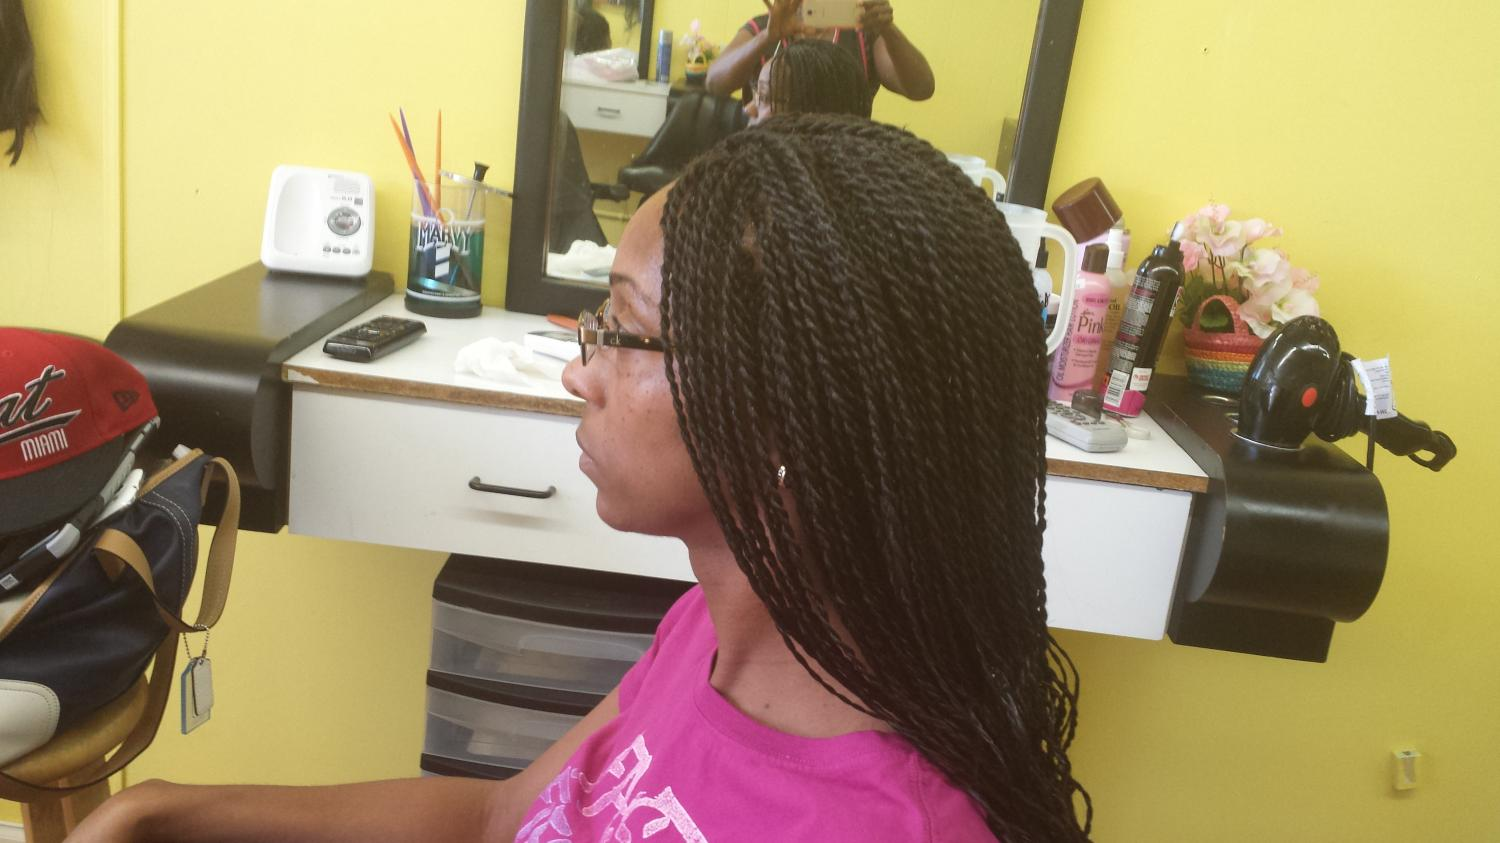 Remember TATA African Hair Braiding is one